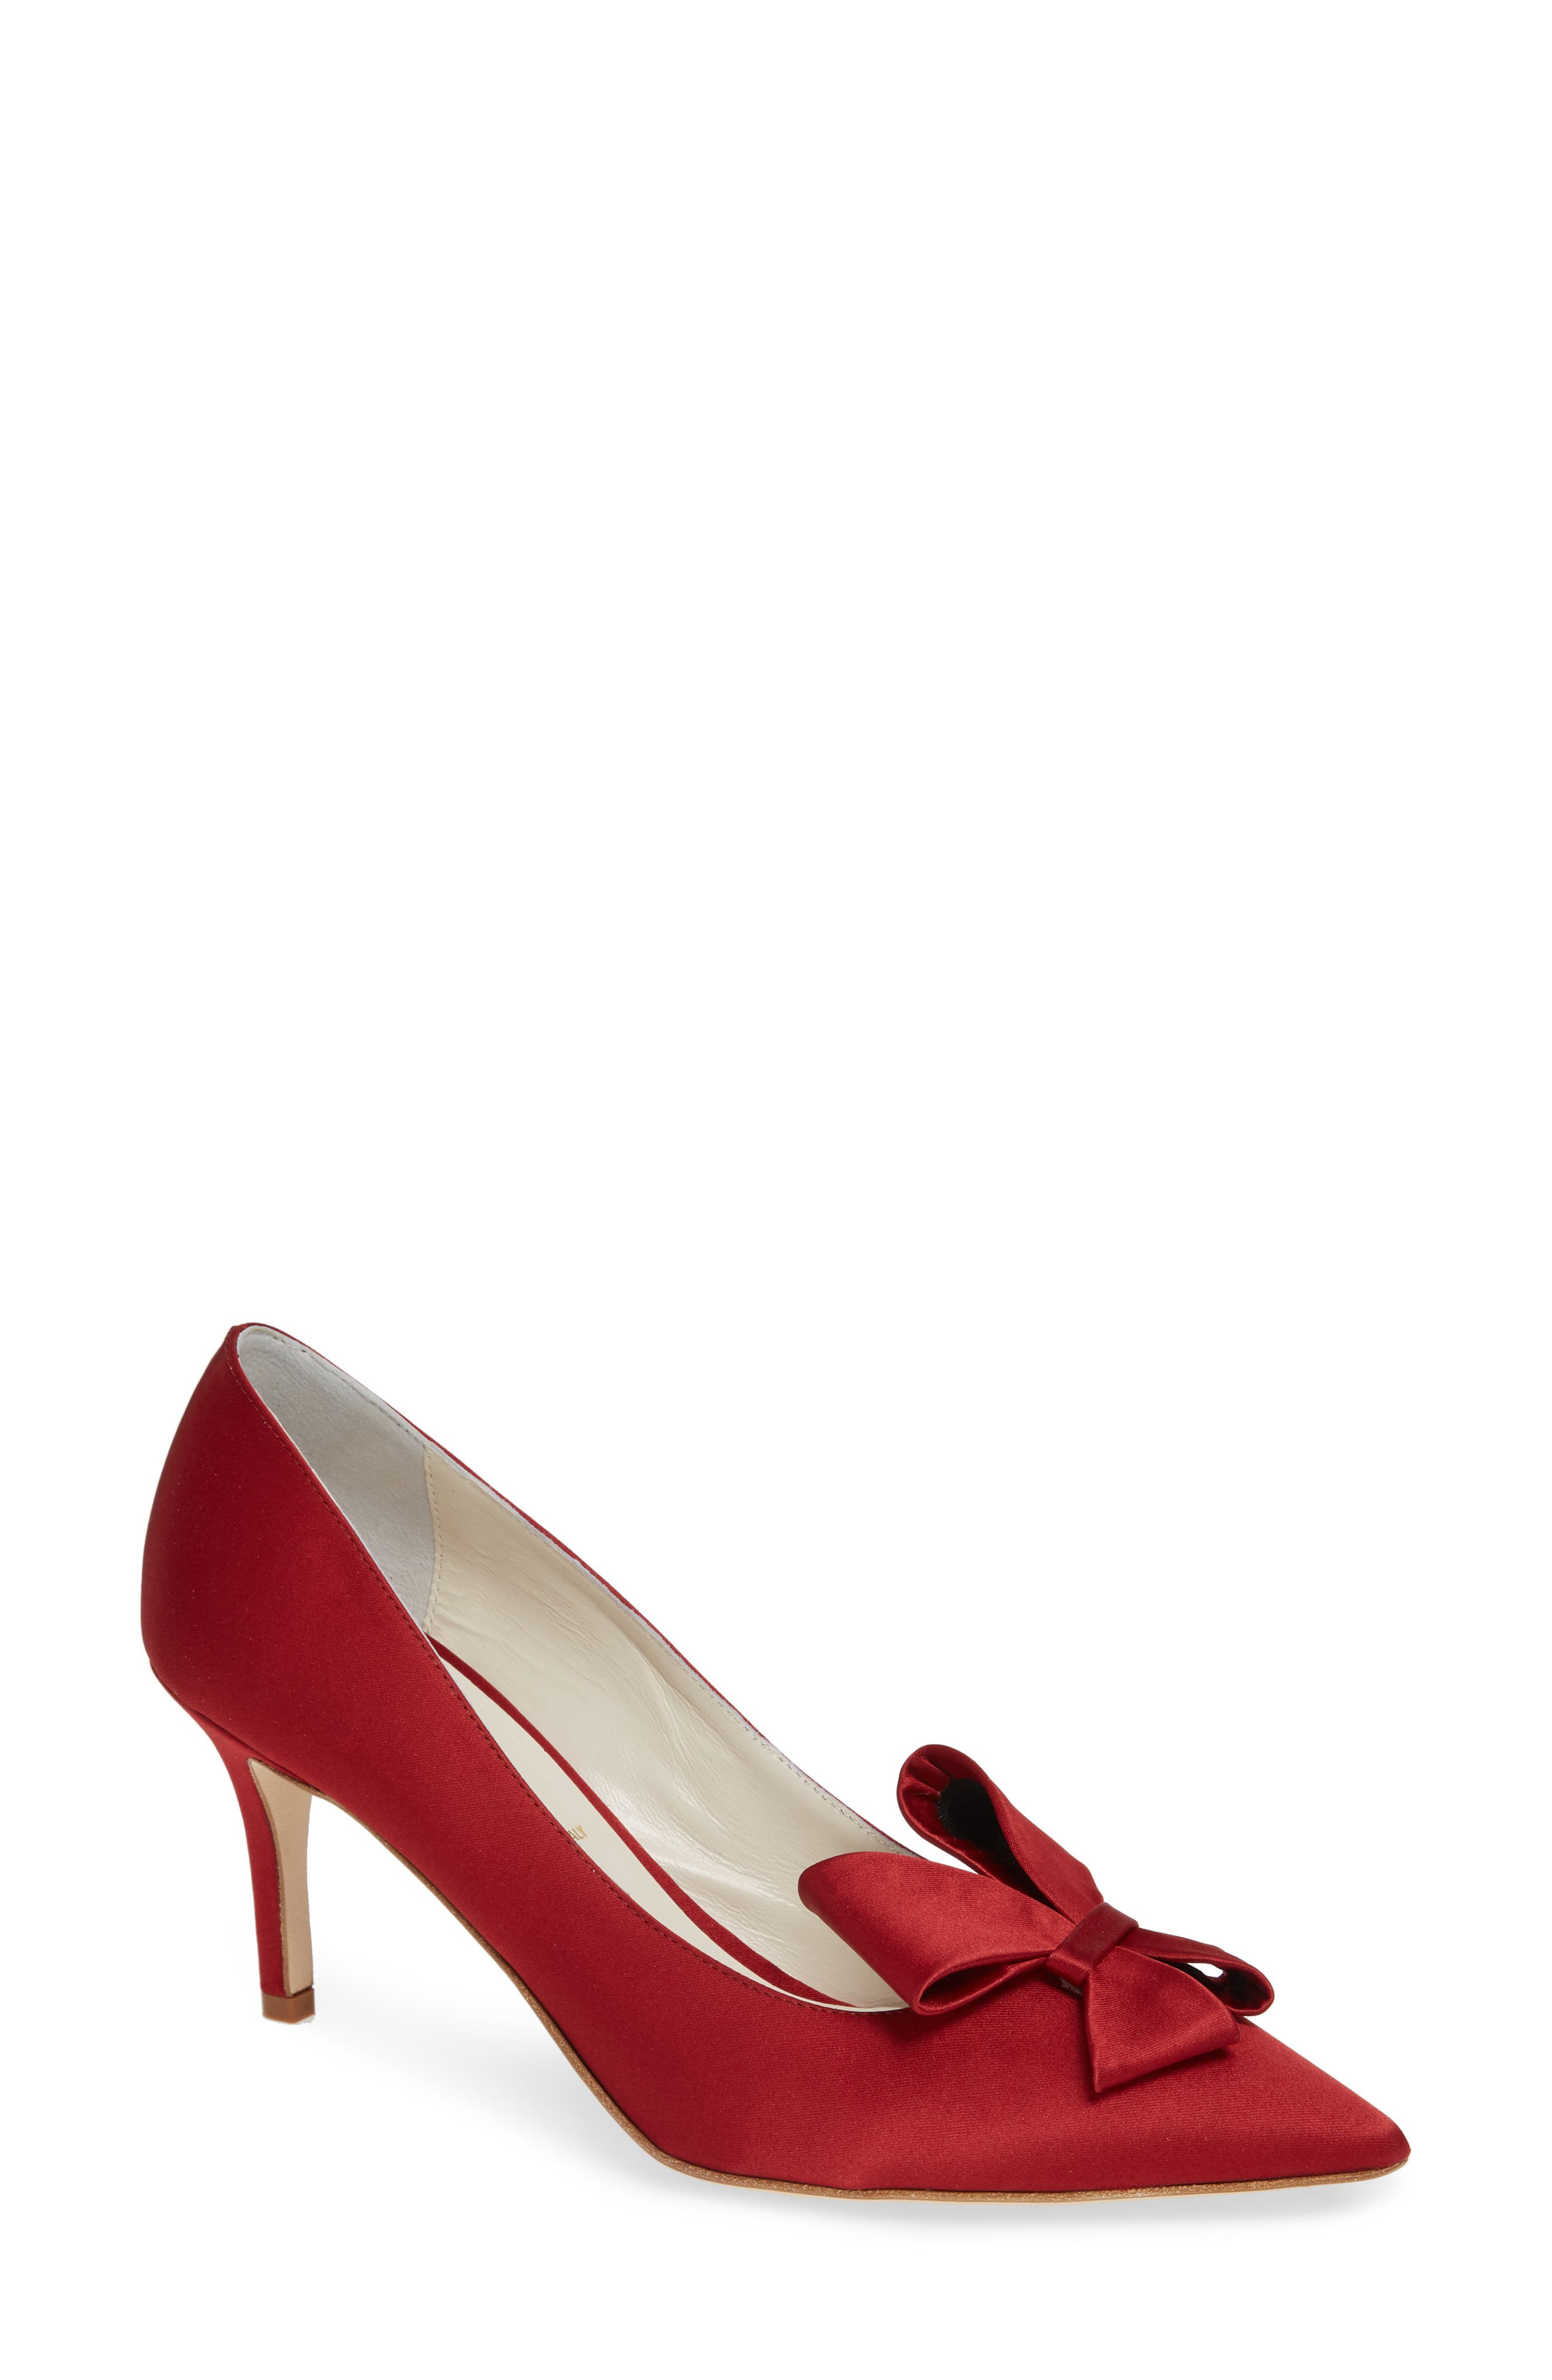 SOMETHING BLEU,                             Caitlin Bow Pointy Toe Pump,                             Main thumbnail 1, color,                             LIPSTICK MOIRE